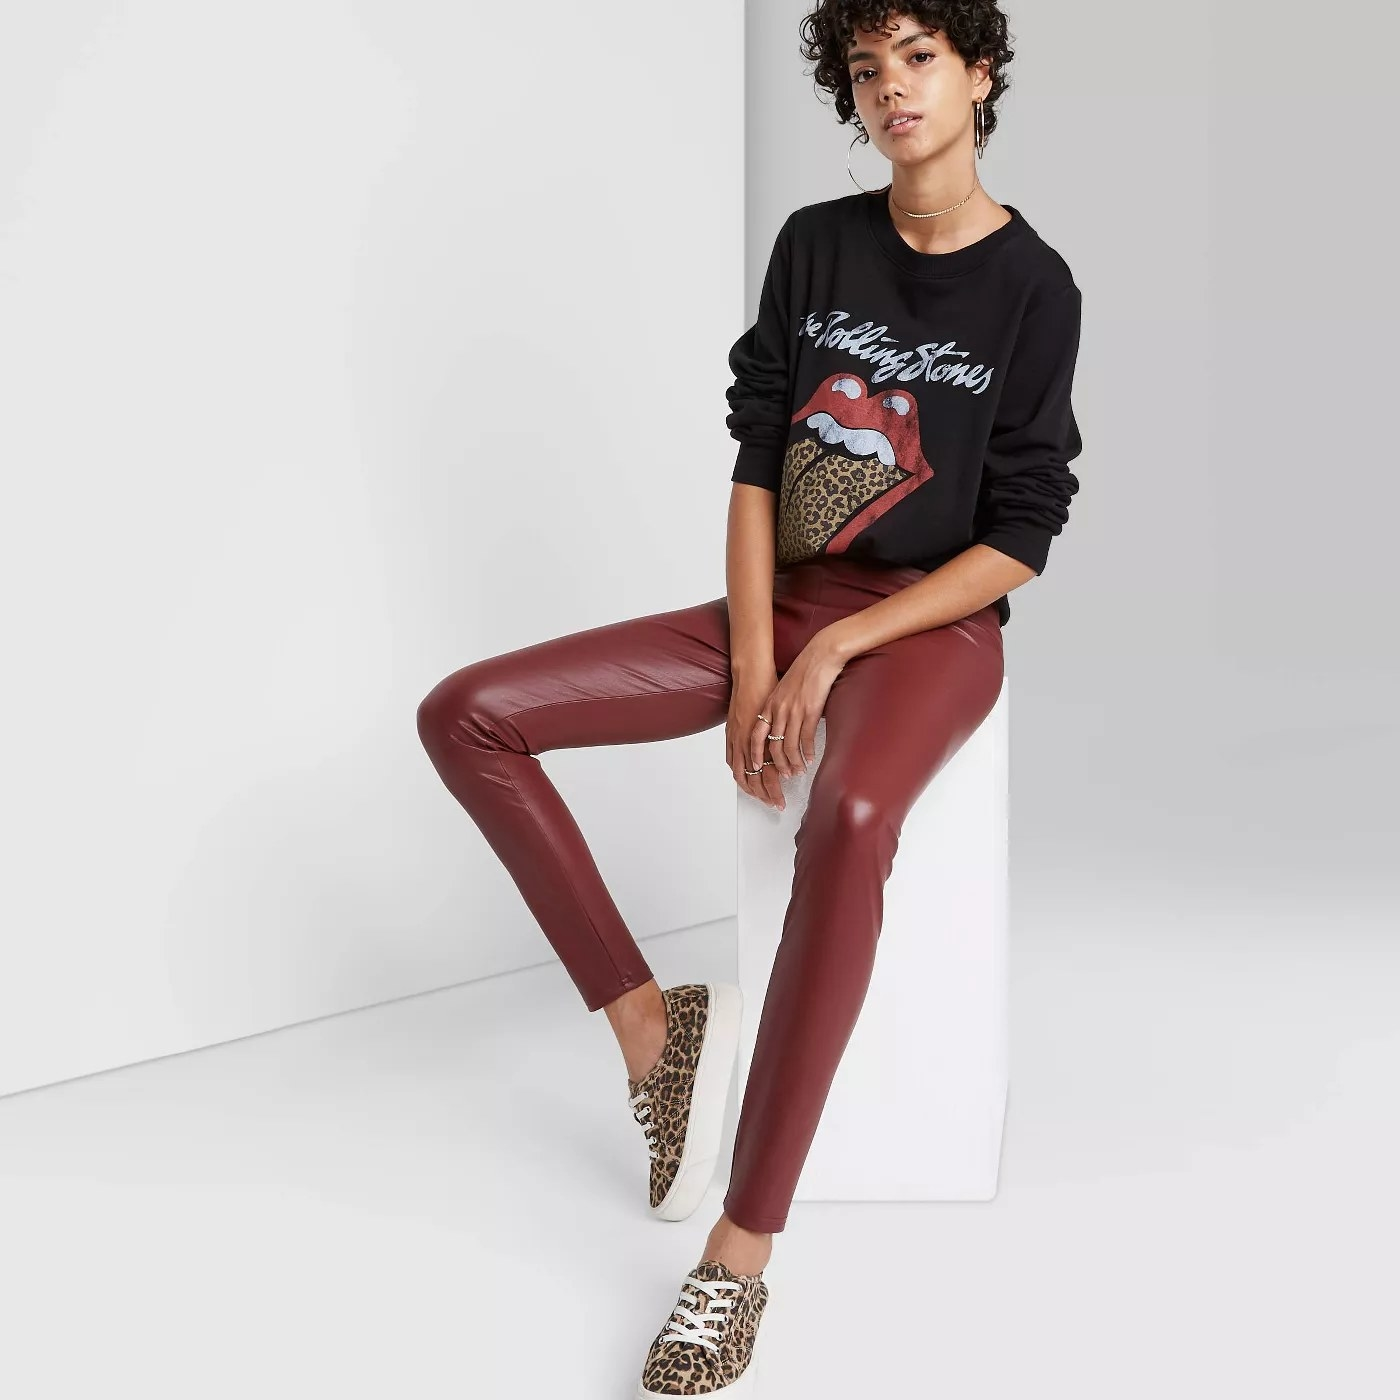 Burgundy leather leggings paired with t-shirt and cheetah shoes